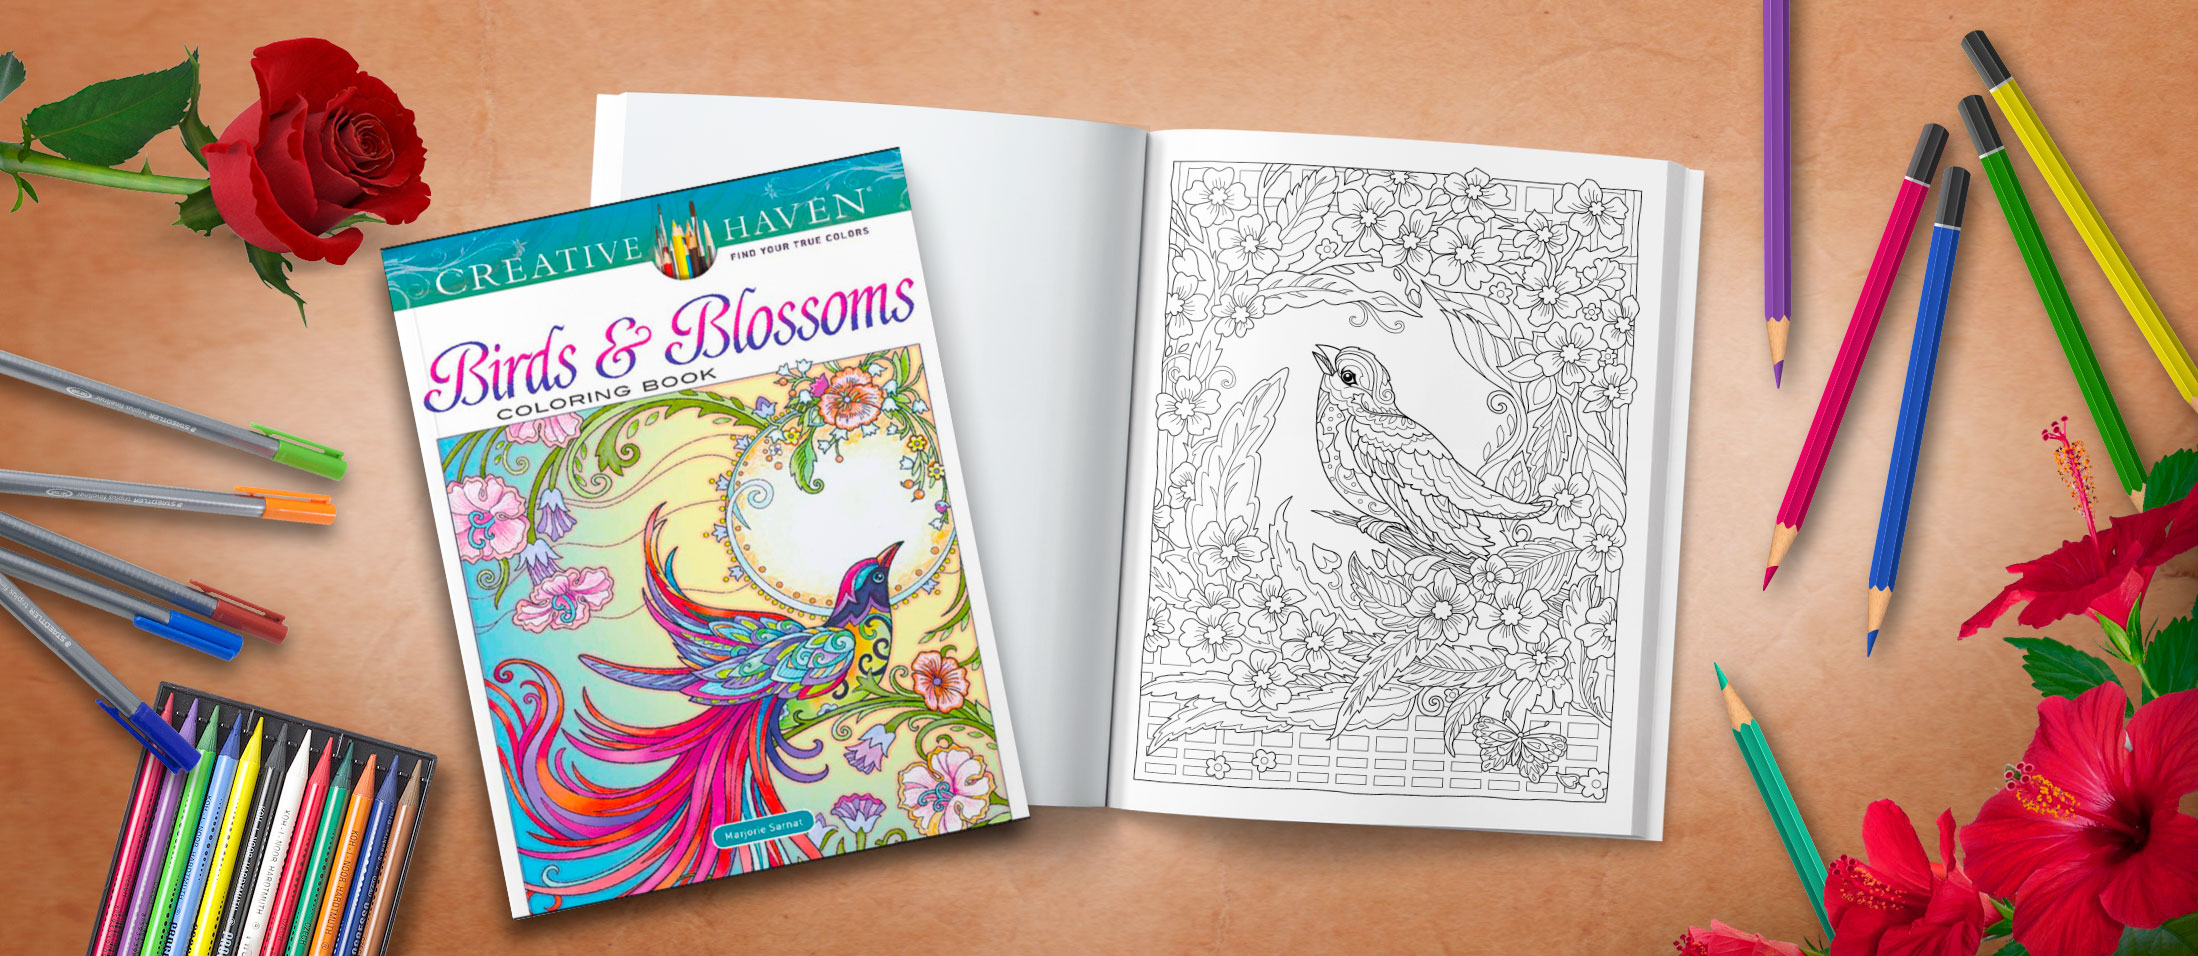 birds_and_blossoms-home-page.jpg